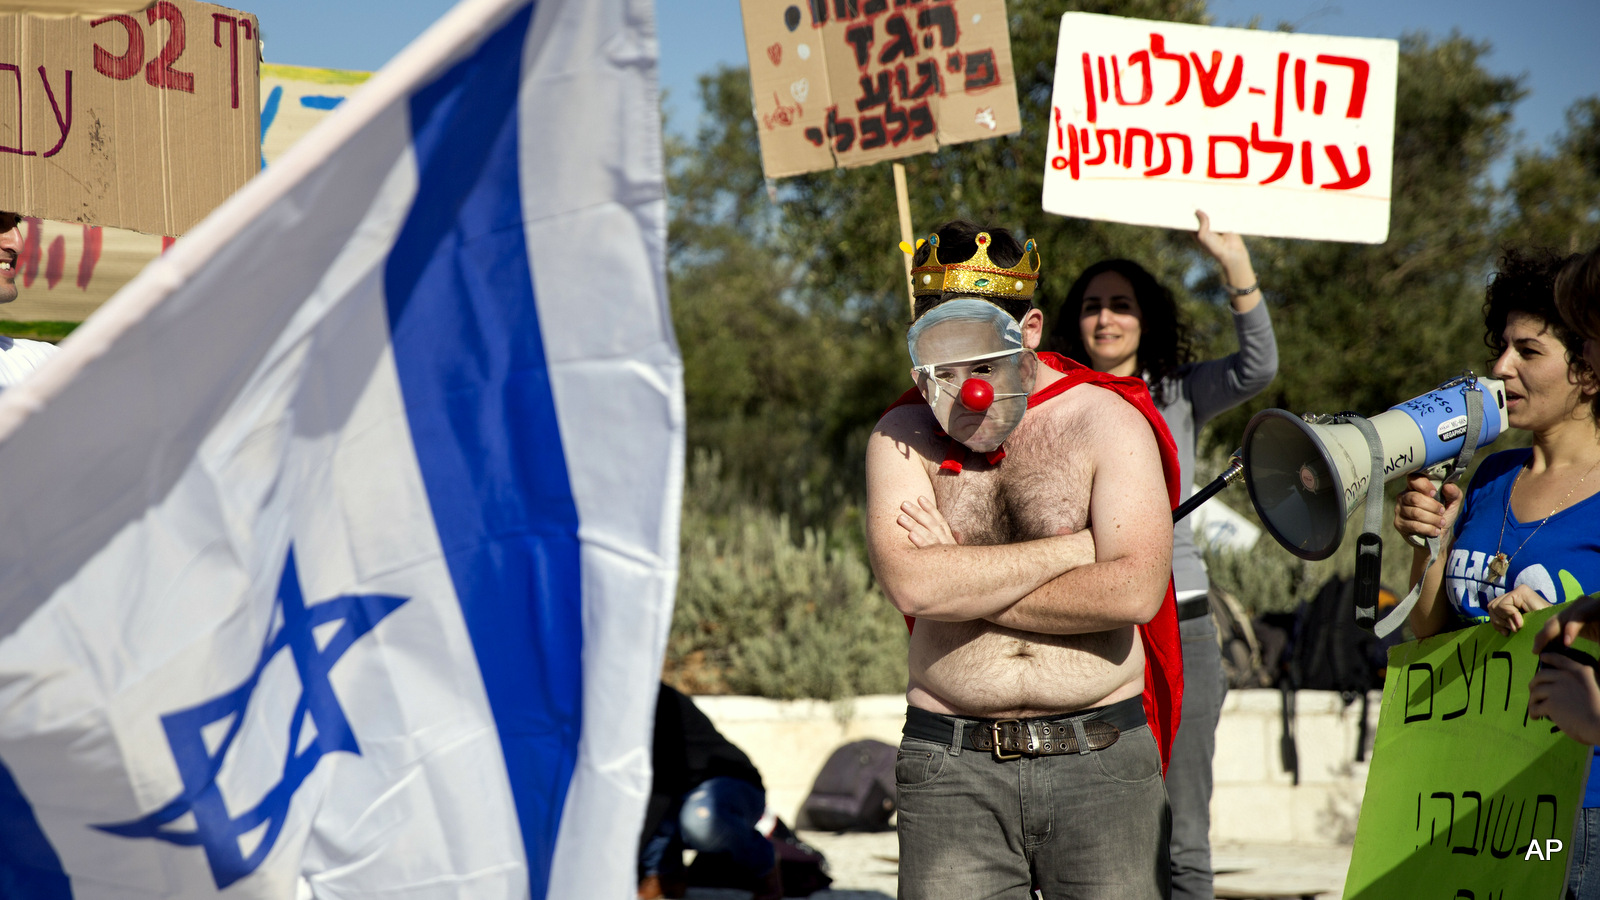 An activist wears a mask bearing a portrait of Prime Minister Benjamin Netanyahu during a protest against a natural gas deal signed in December, 2015 with U.S. and Israeli developers for drilling offshore gas deposits, in front of the Supreme Court in Jerusalem.